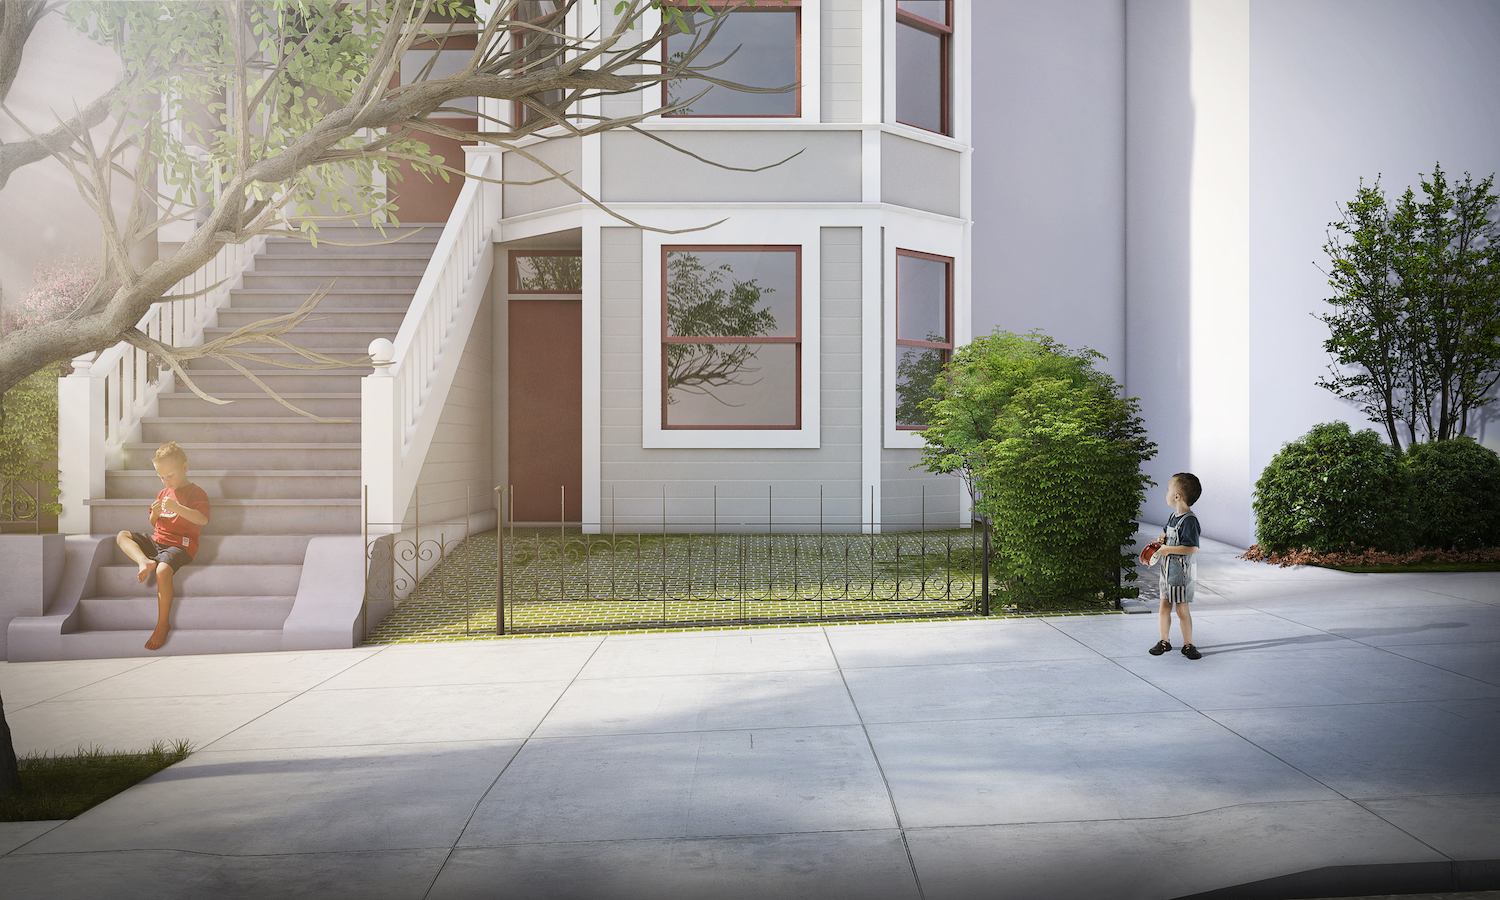 21st street secret garage door facade rendering san francisco.jpg